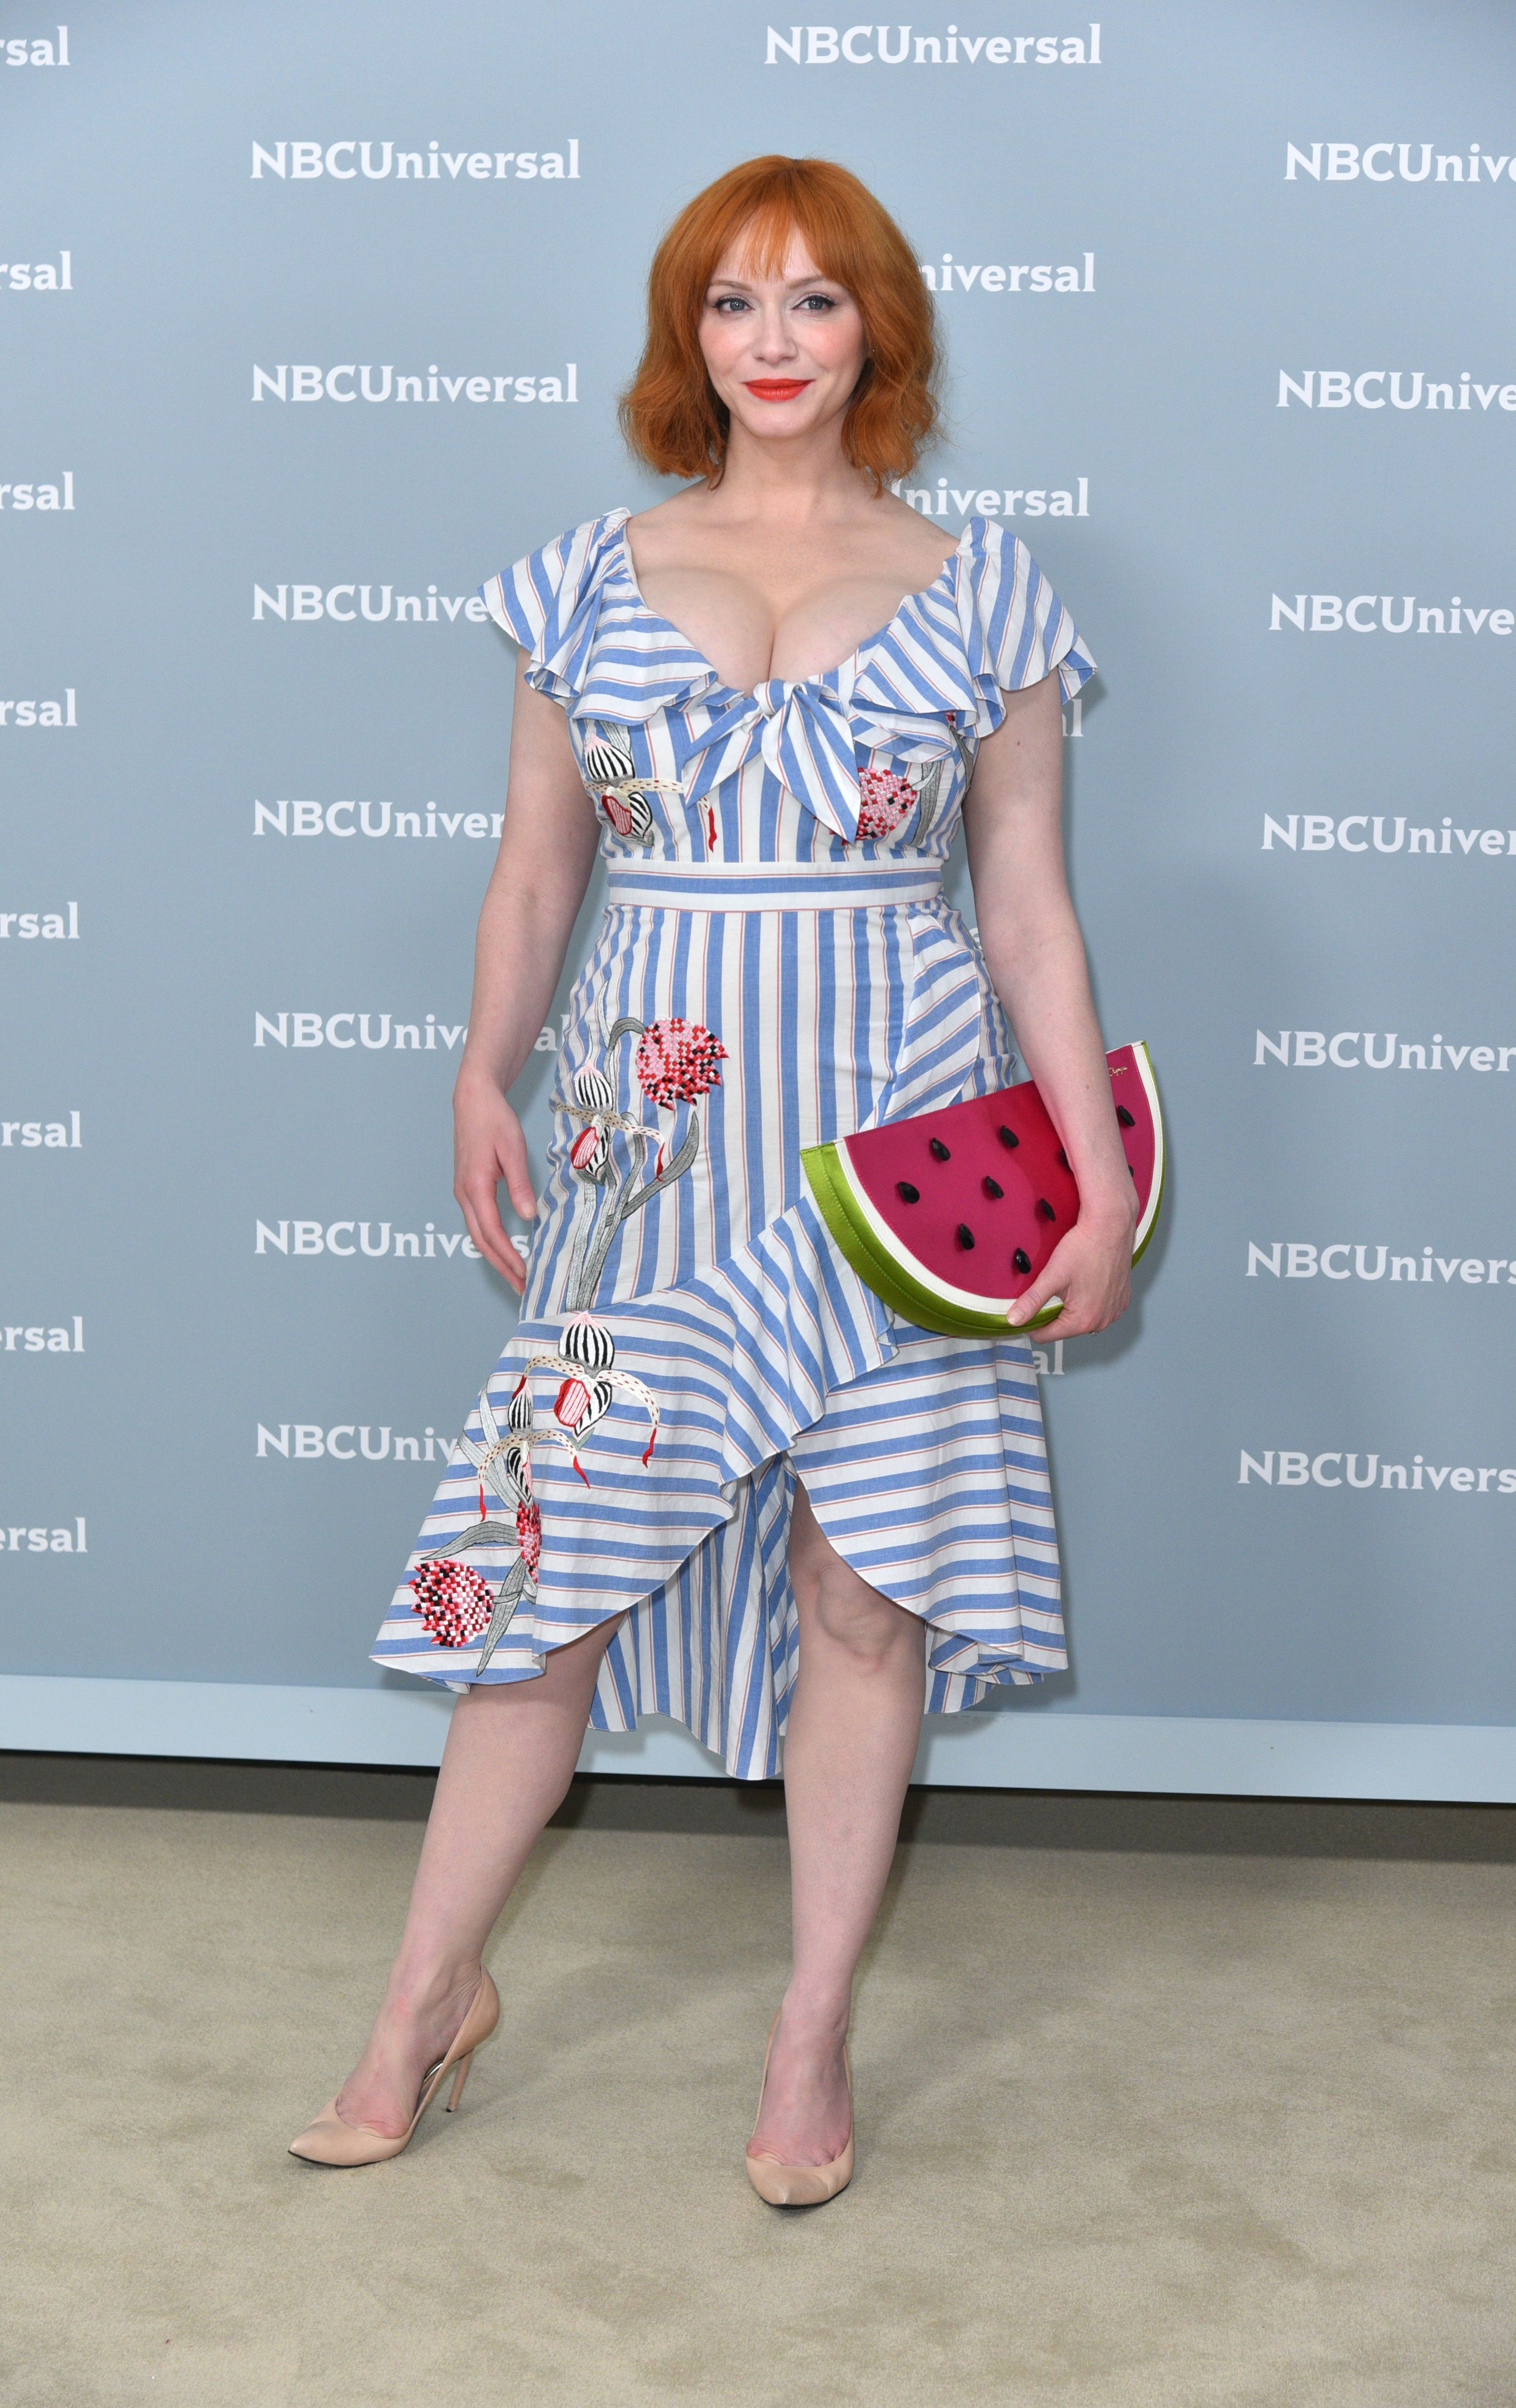 Christina Hendricks attends the NBCUniversal Upfront Presentation in New York City on May 14, 2018.